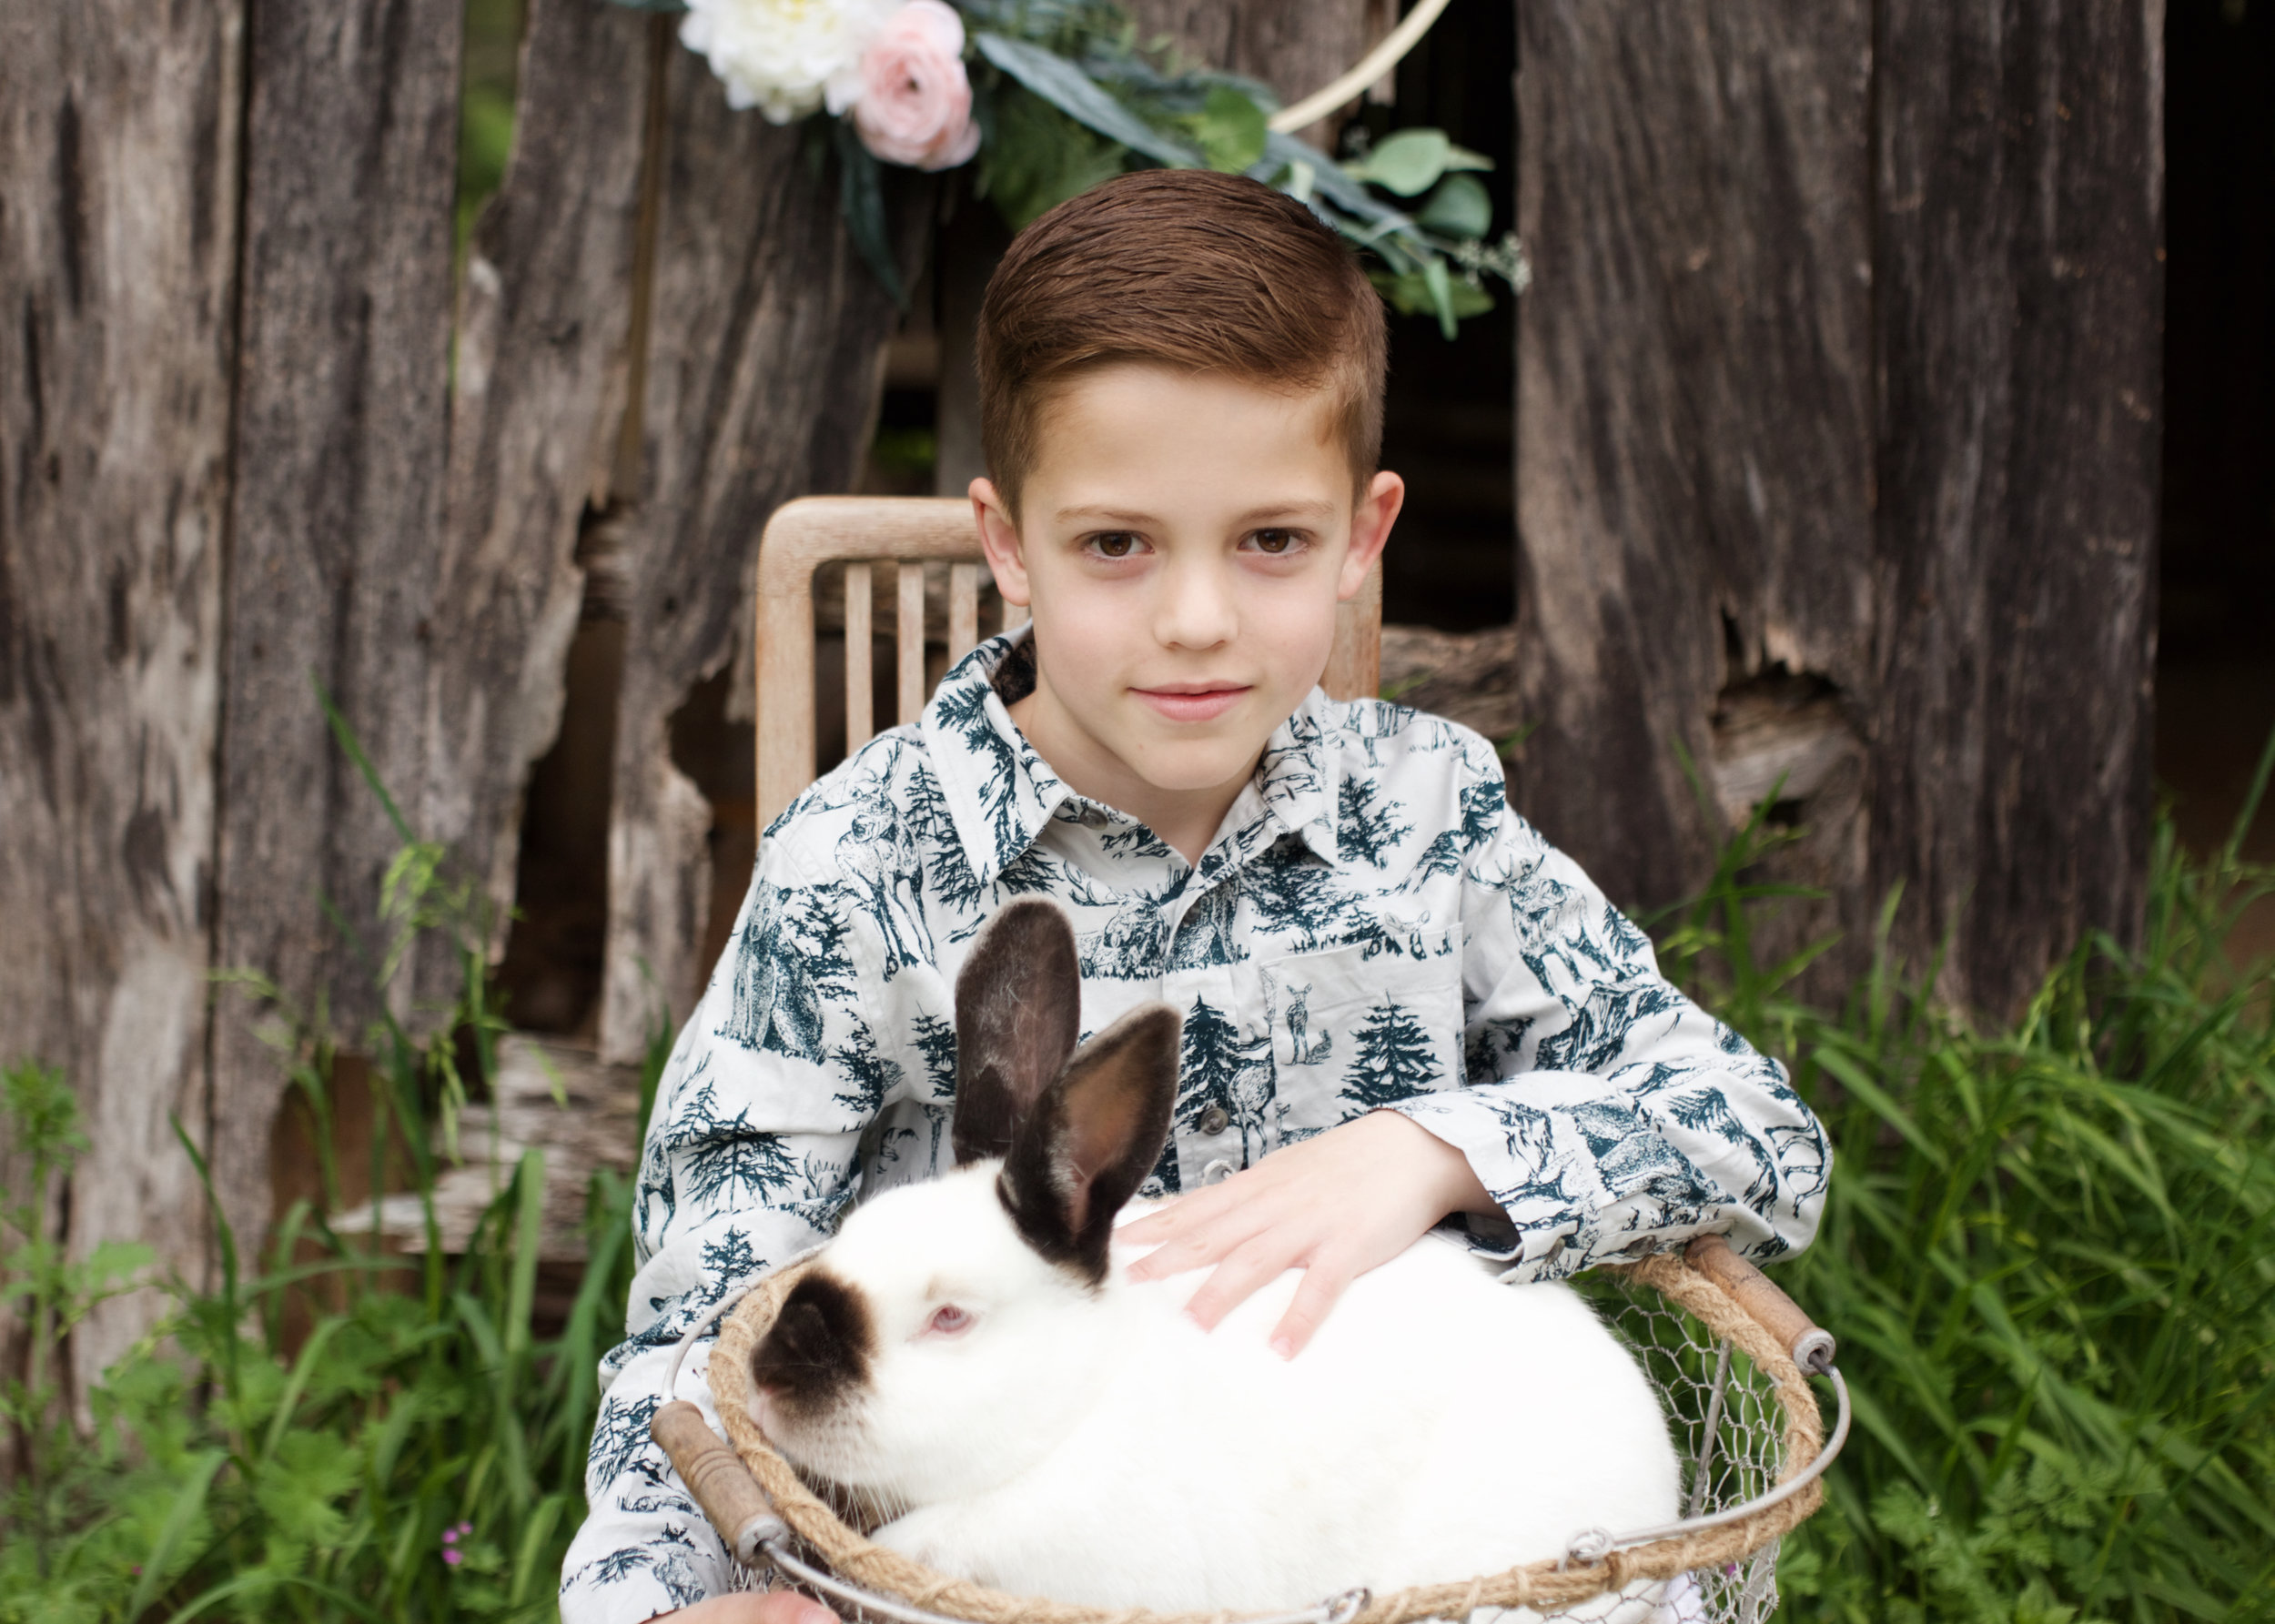 boy-with-bunny.jpg